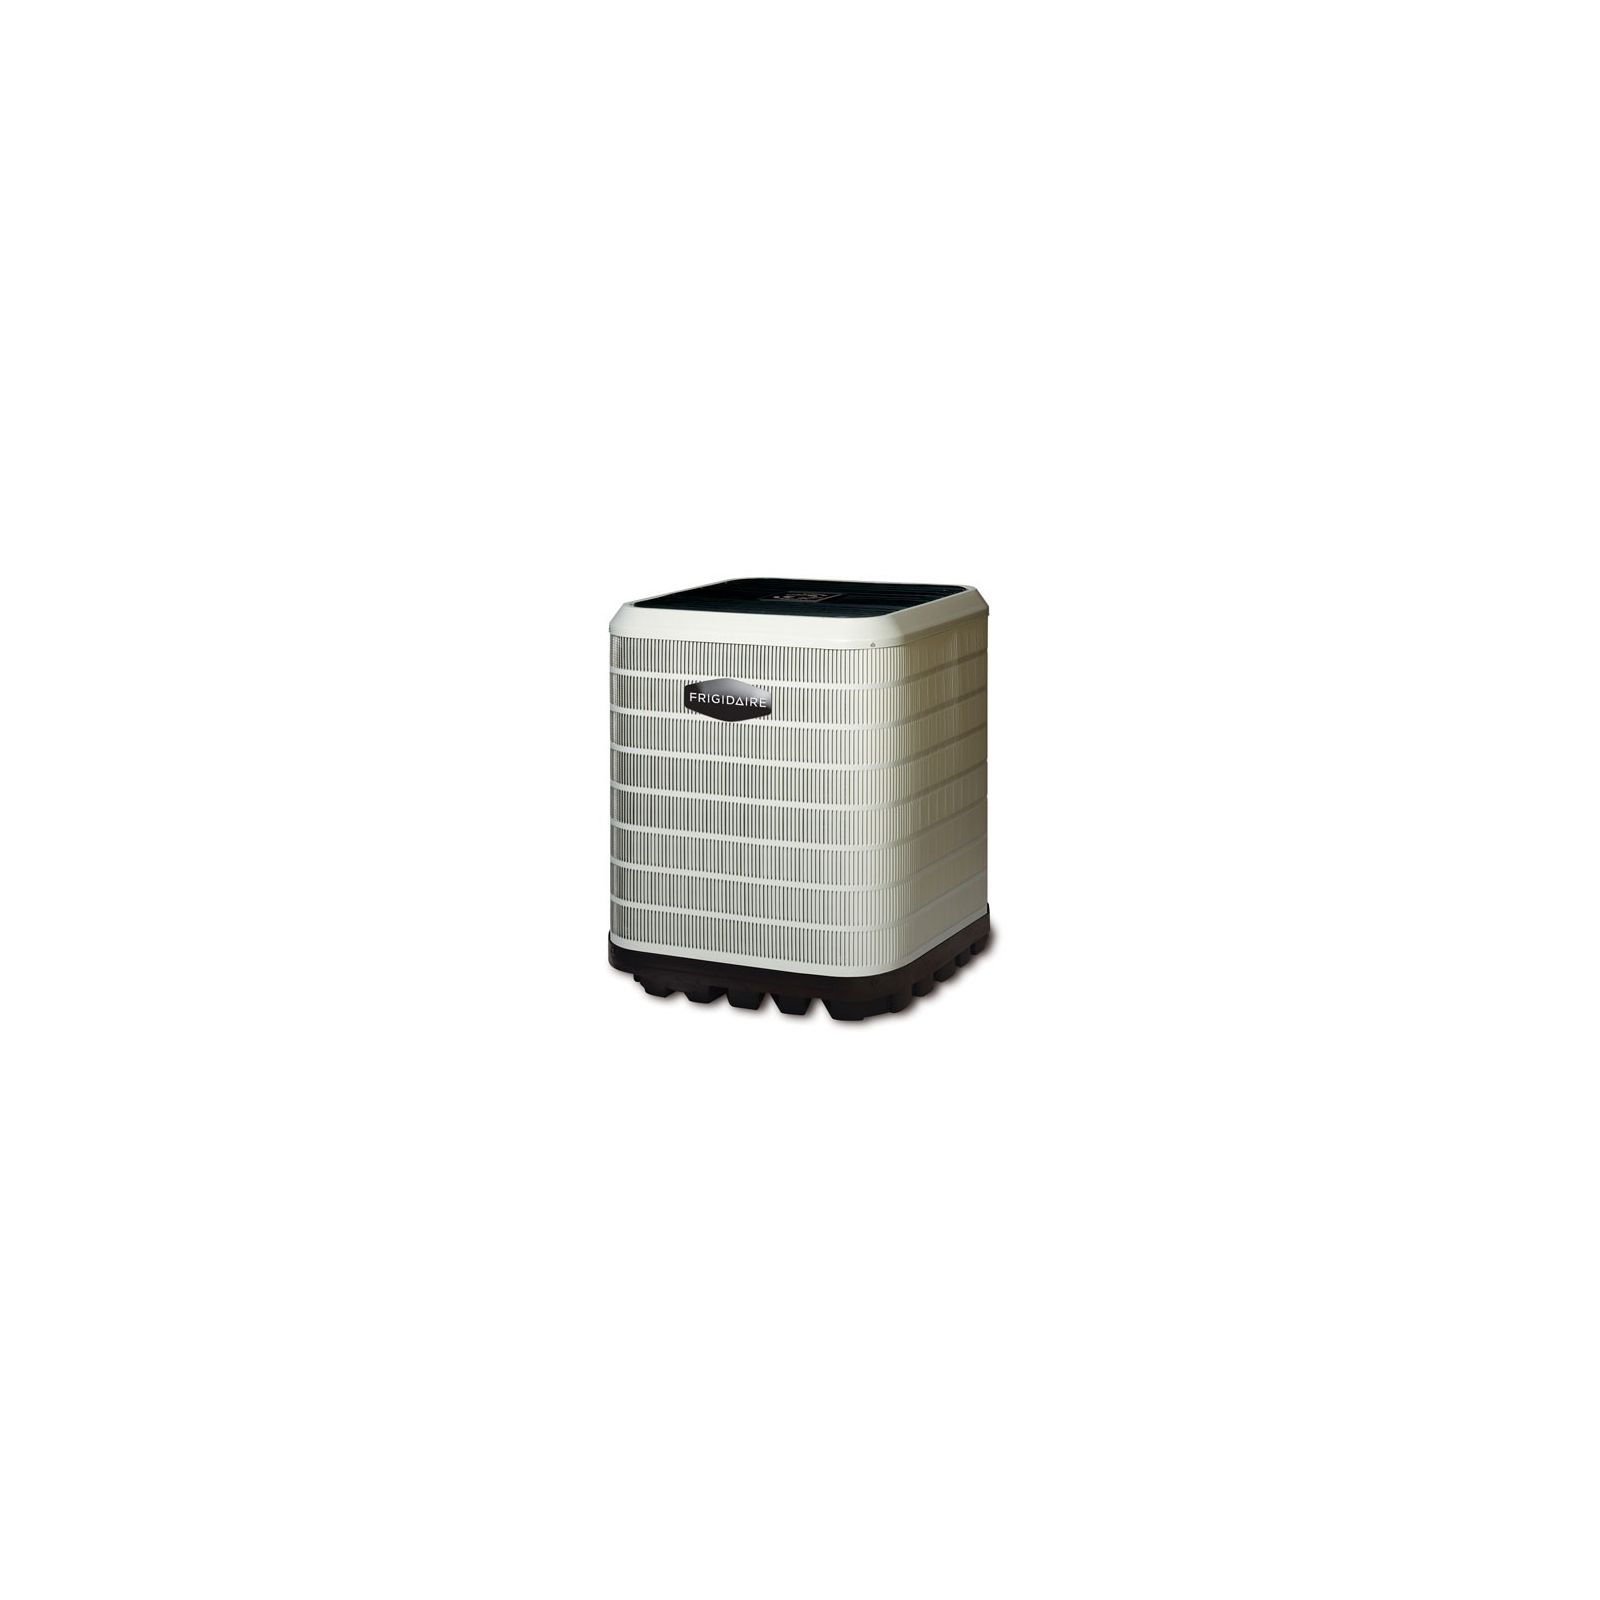 Frigidaire 921654F - FS4BF-048KC - 4 Ton 16 SEER Extra High Efficiency Air Conditioner, R410A